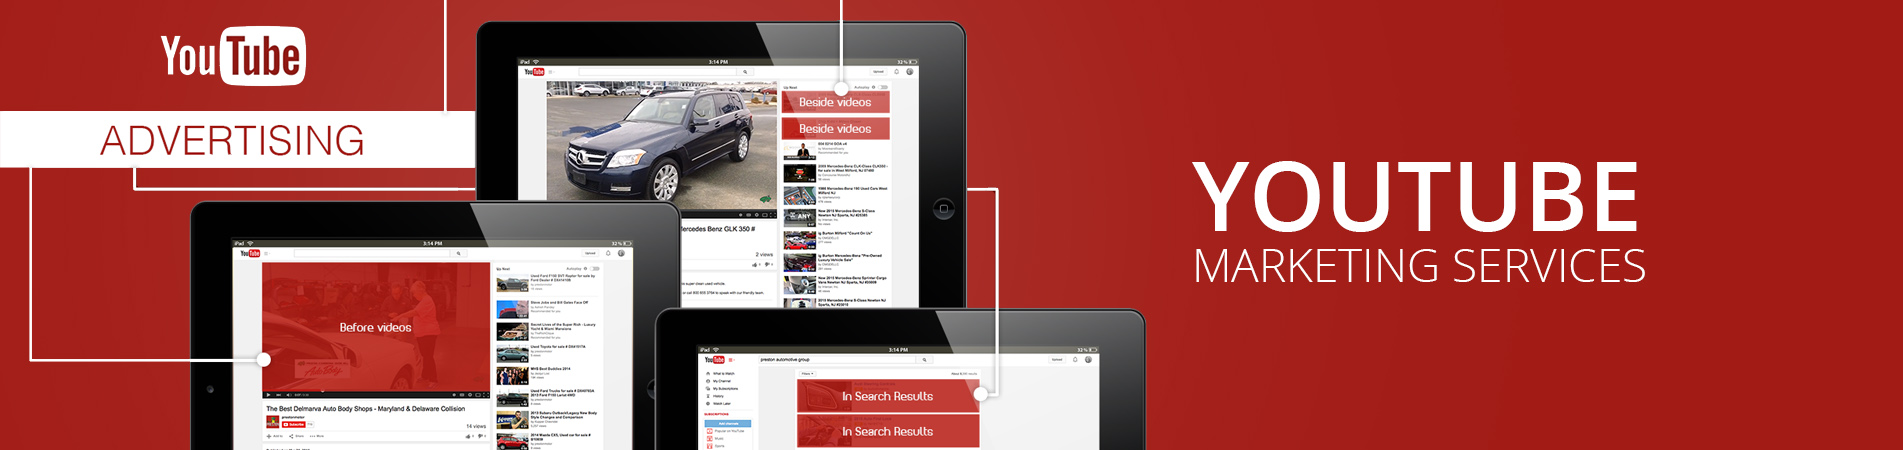 Youtube Marketing Services in Bangalore